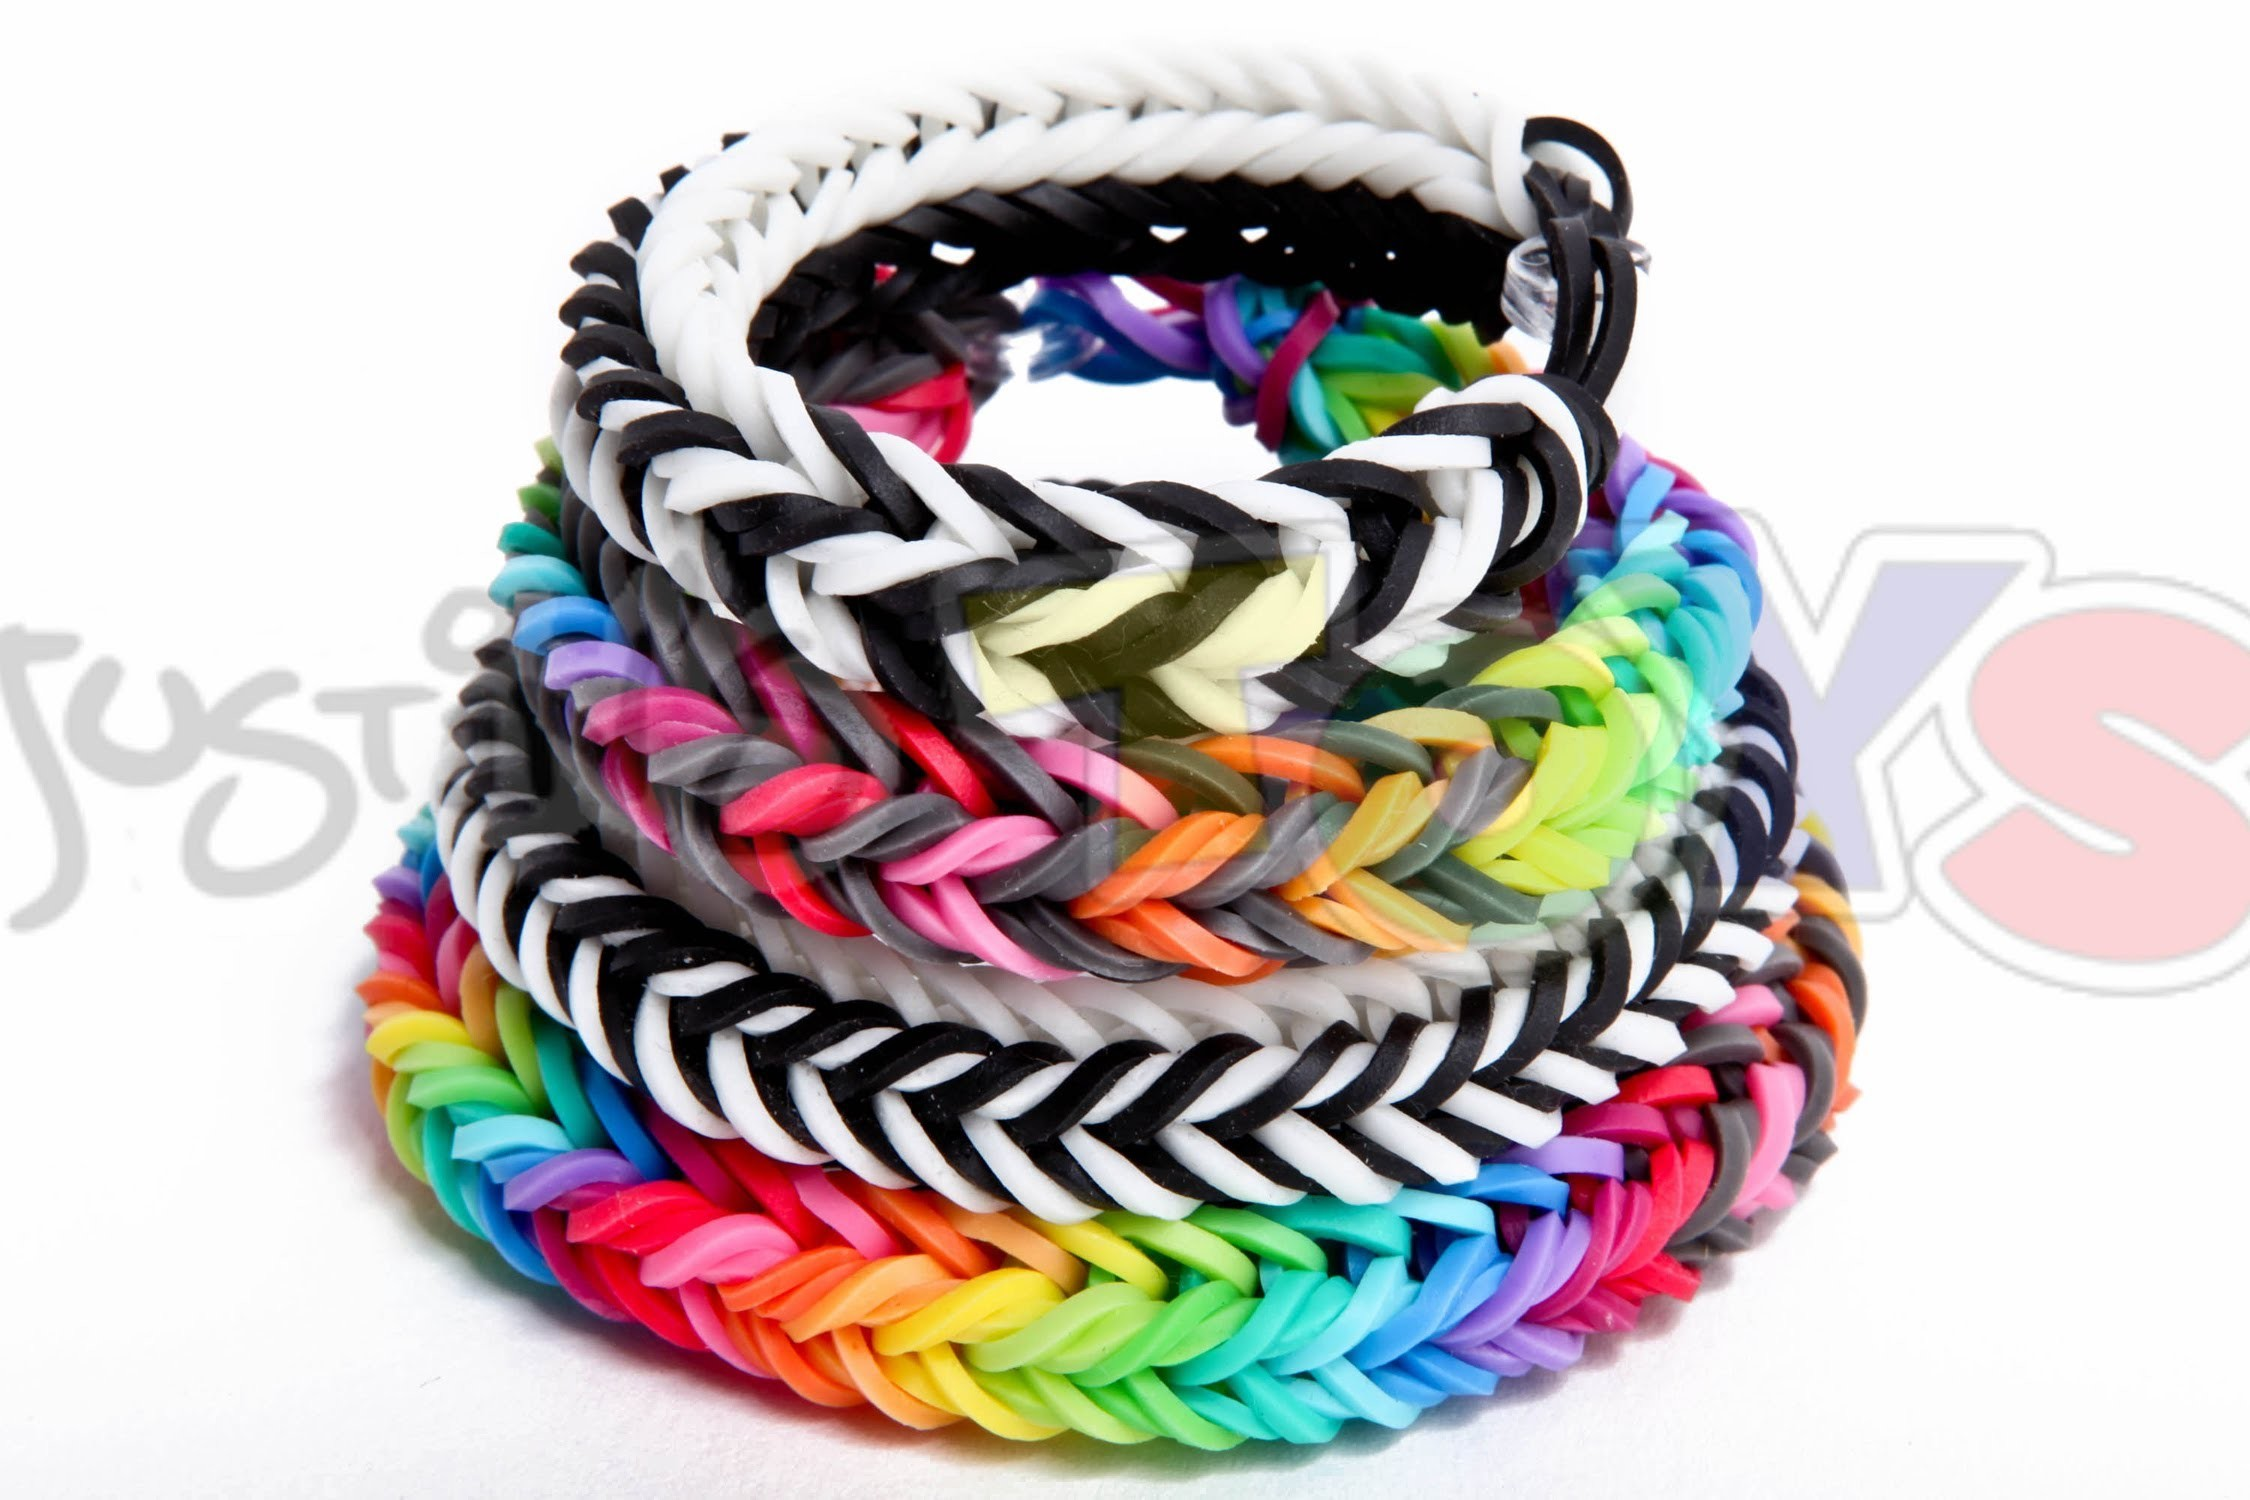 Dragon Fishtail Bracelet - EASY Rainbow Loom and Monster Tail Tutorial